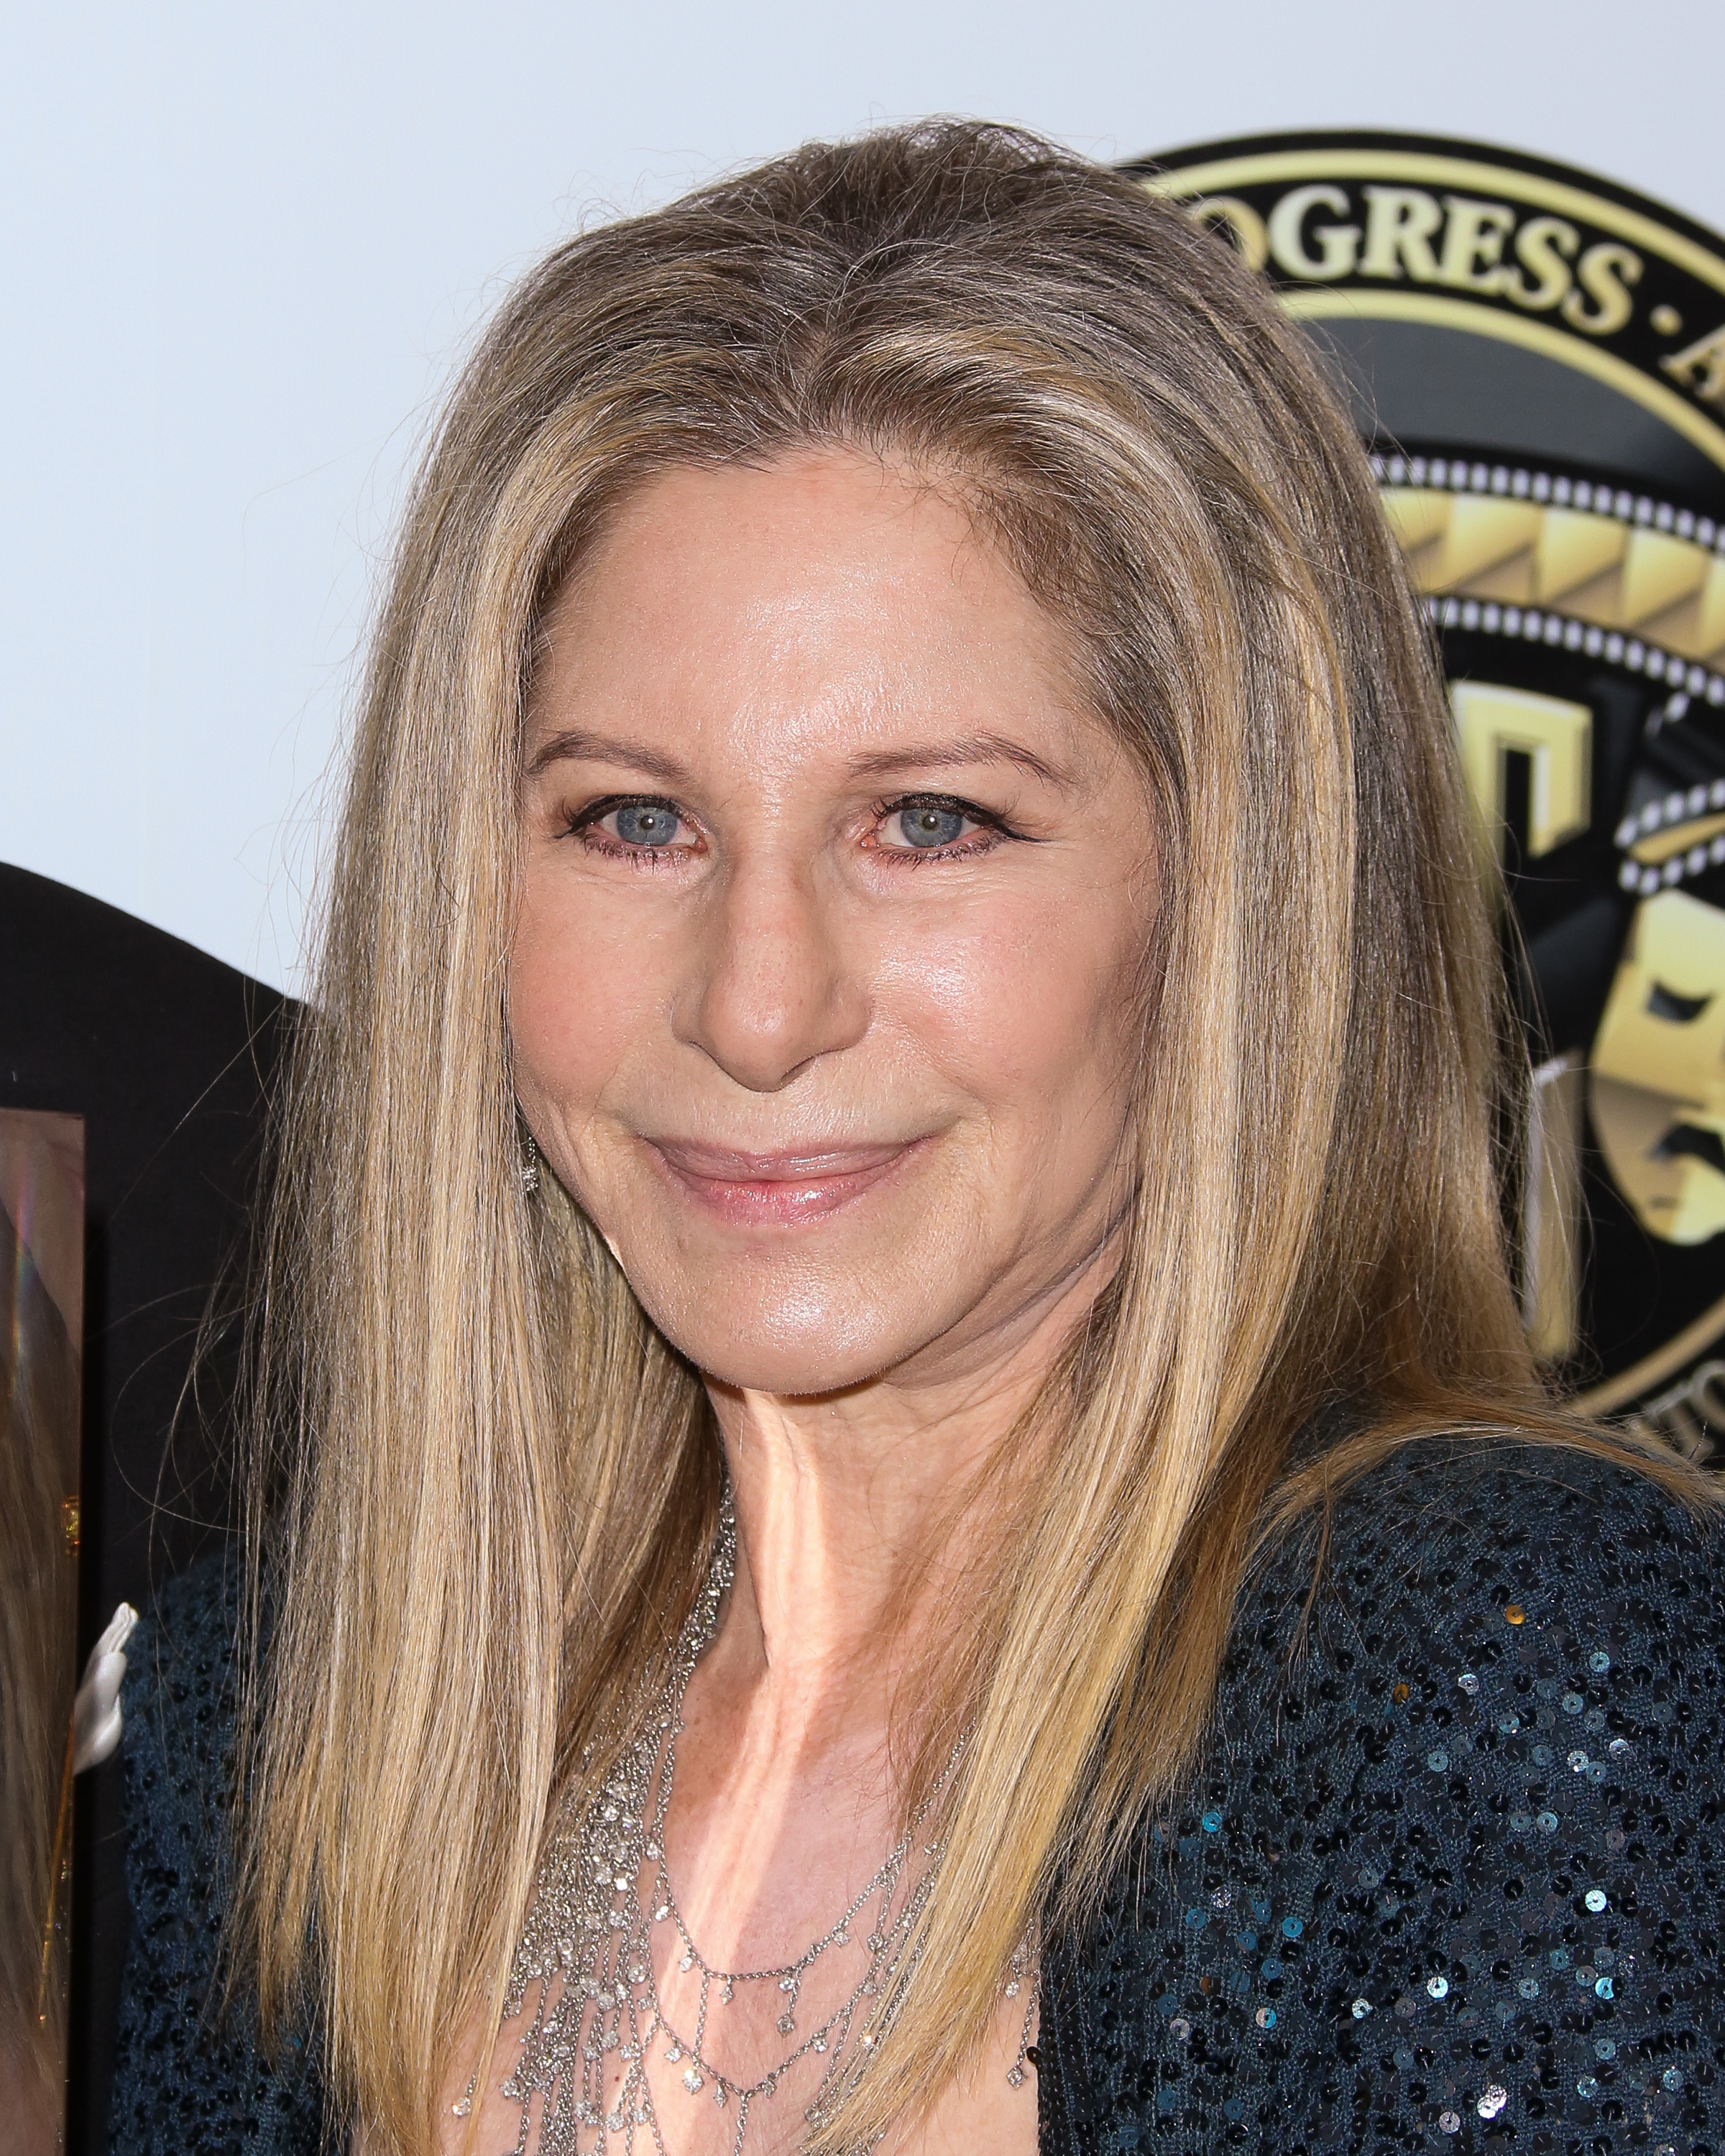 Barbra Streisand calls out Trump in new song